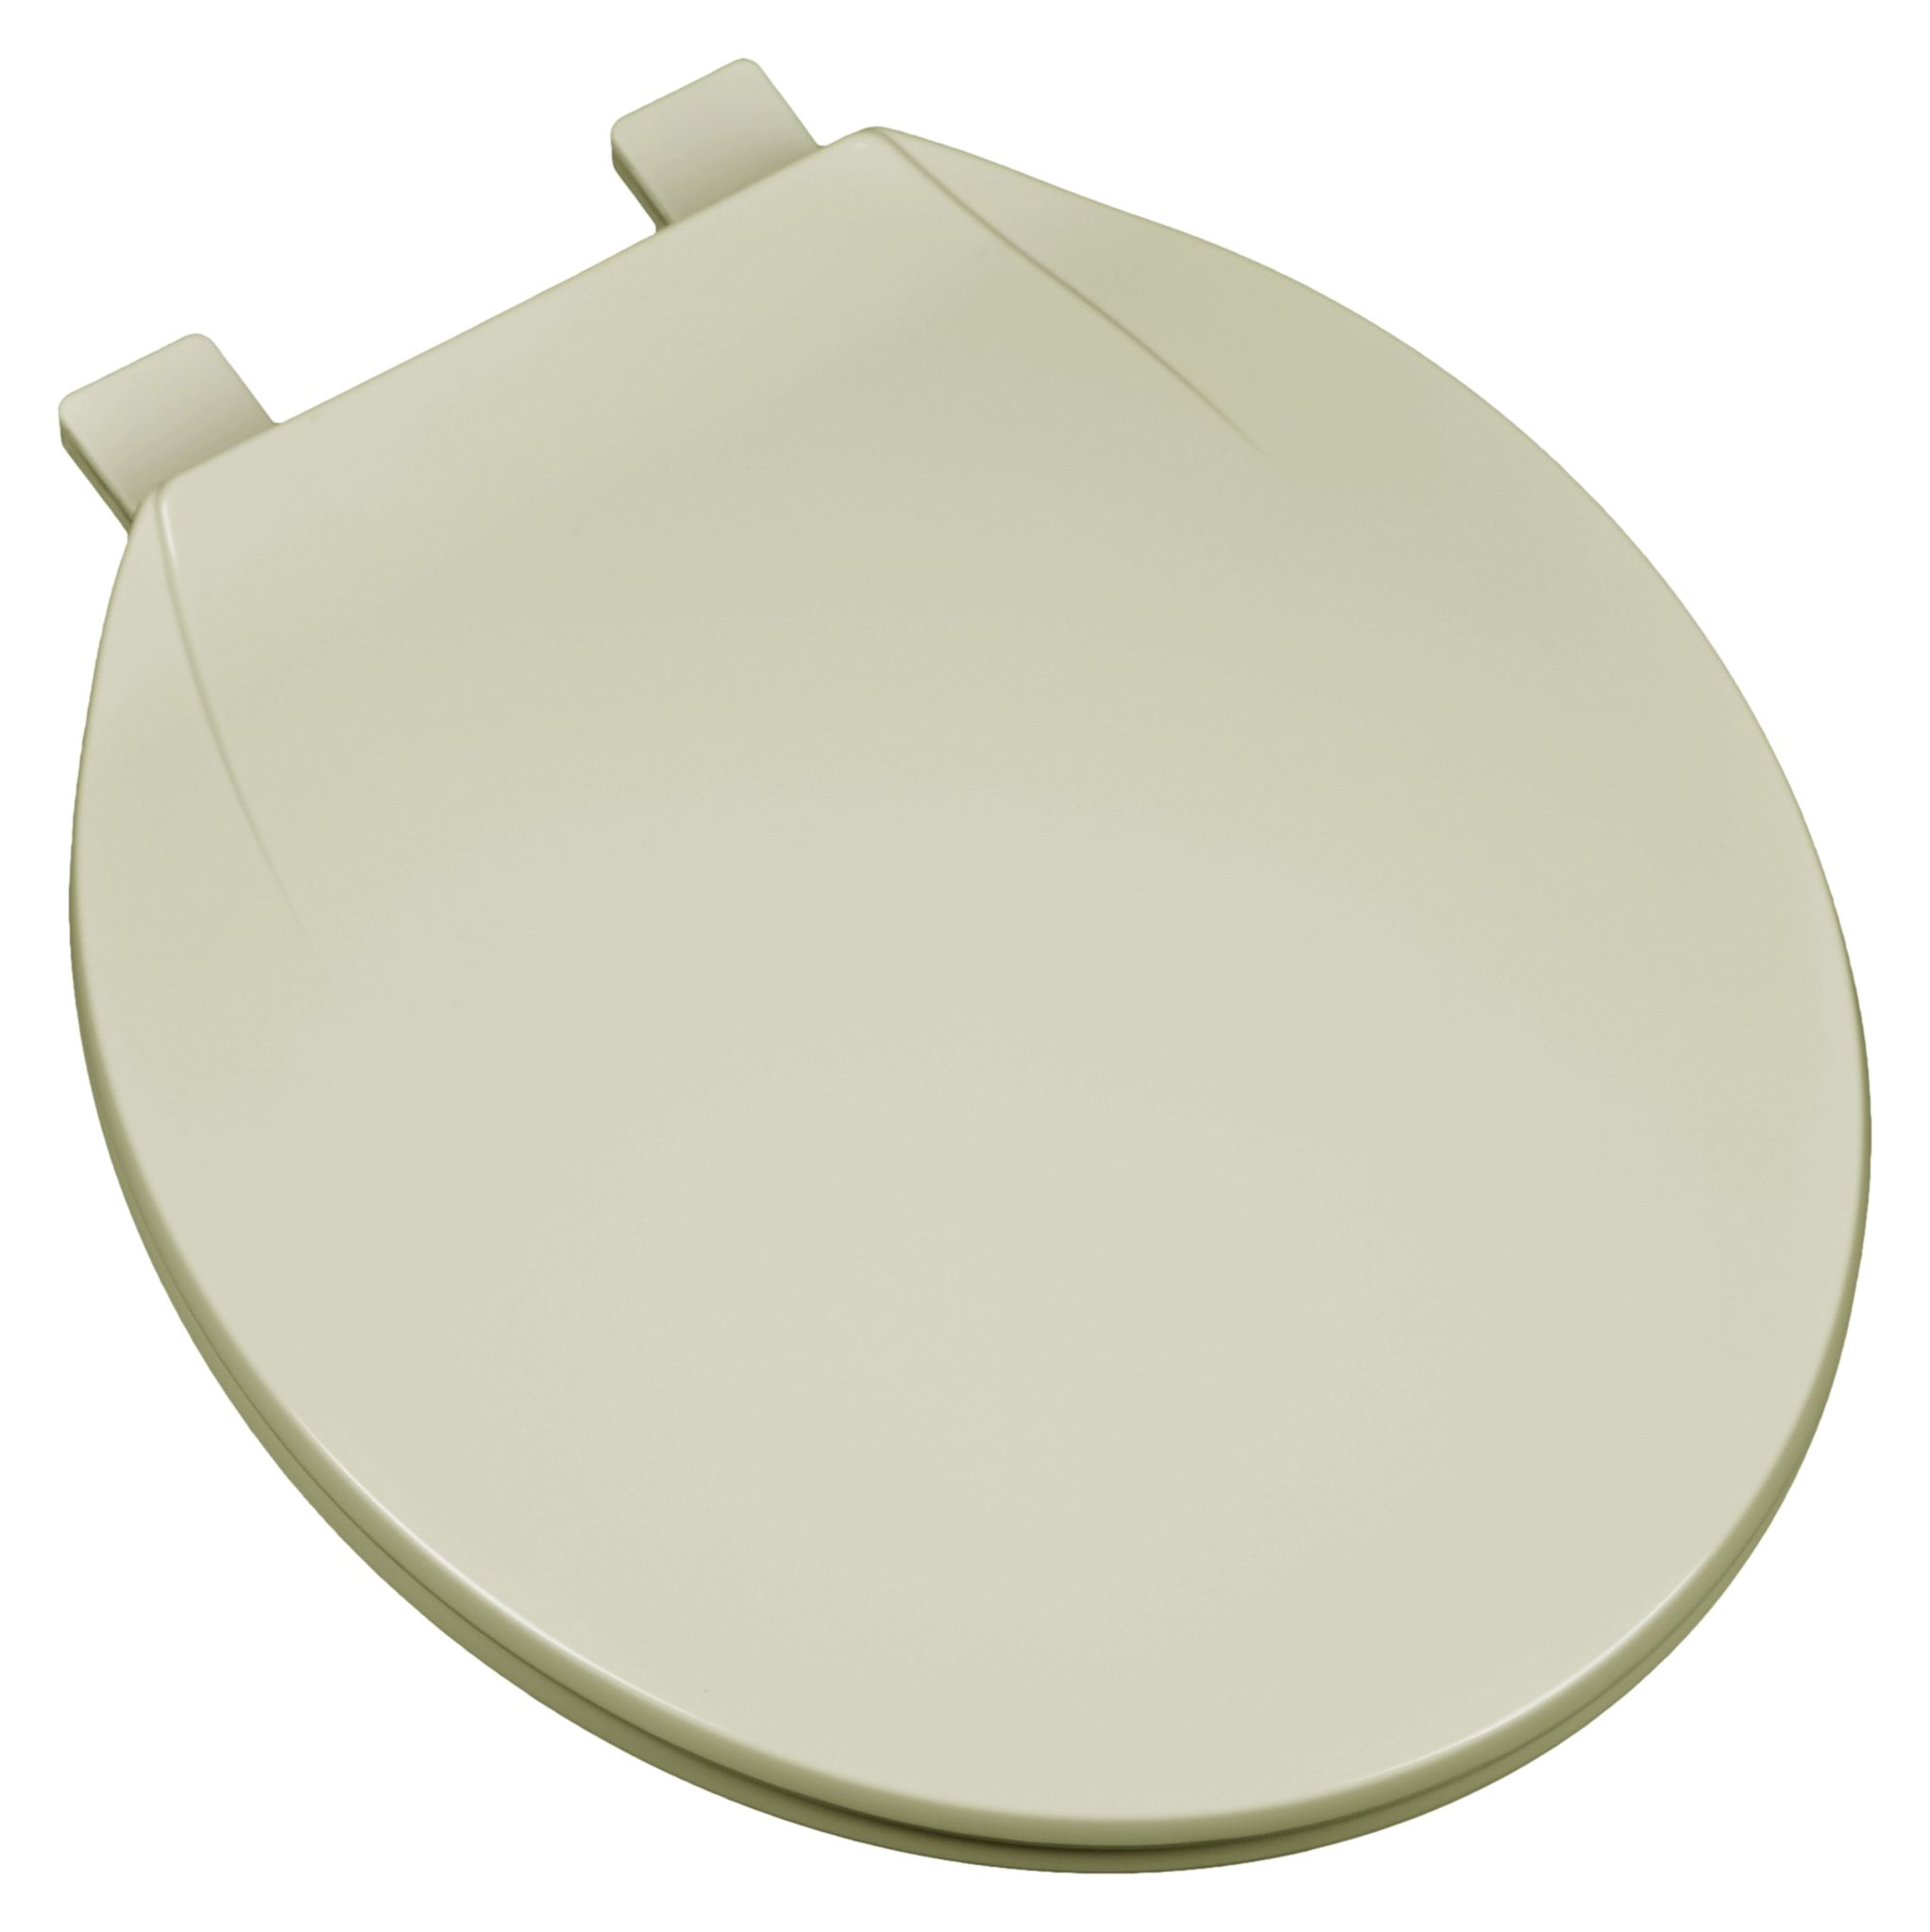 Bath Décor 2F1R4-01 Deluxe Plastic Top Mount Round Toilet Seat with Adjustable Hinge